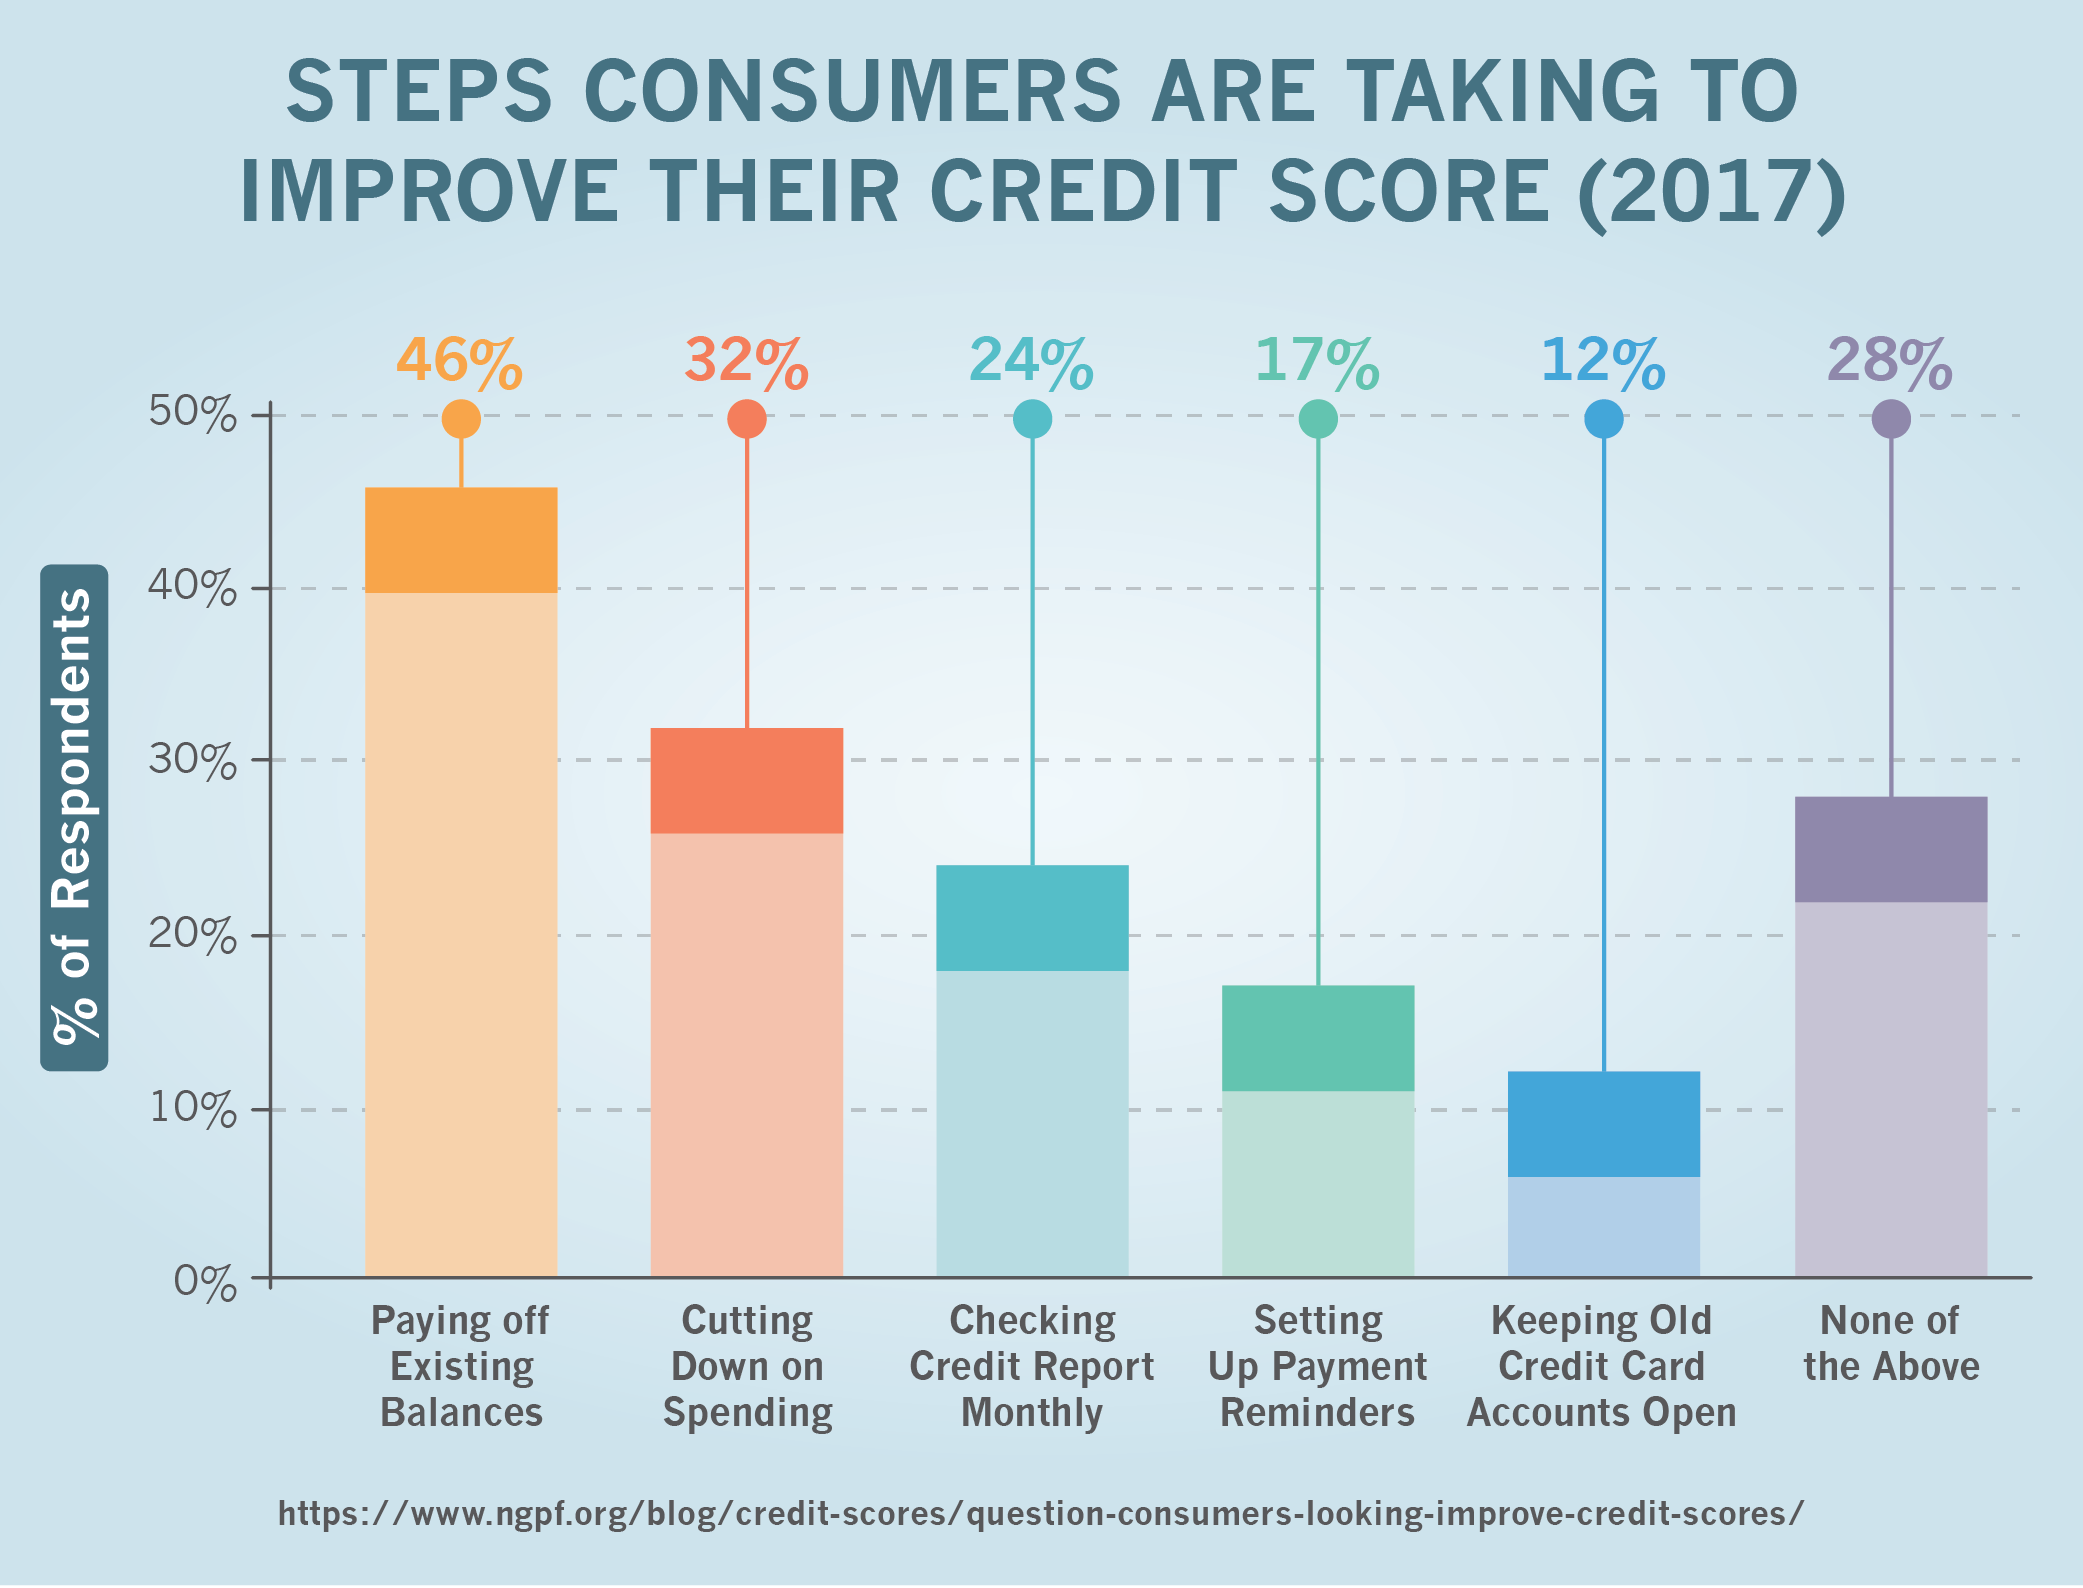 Steps Consumers Are Taking To Improve Their Credit Score (2017)